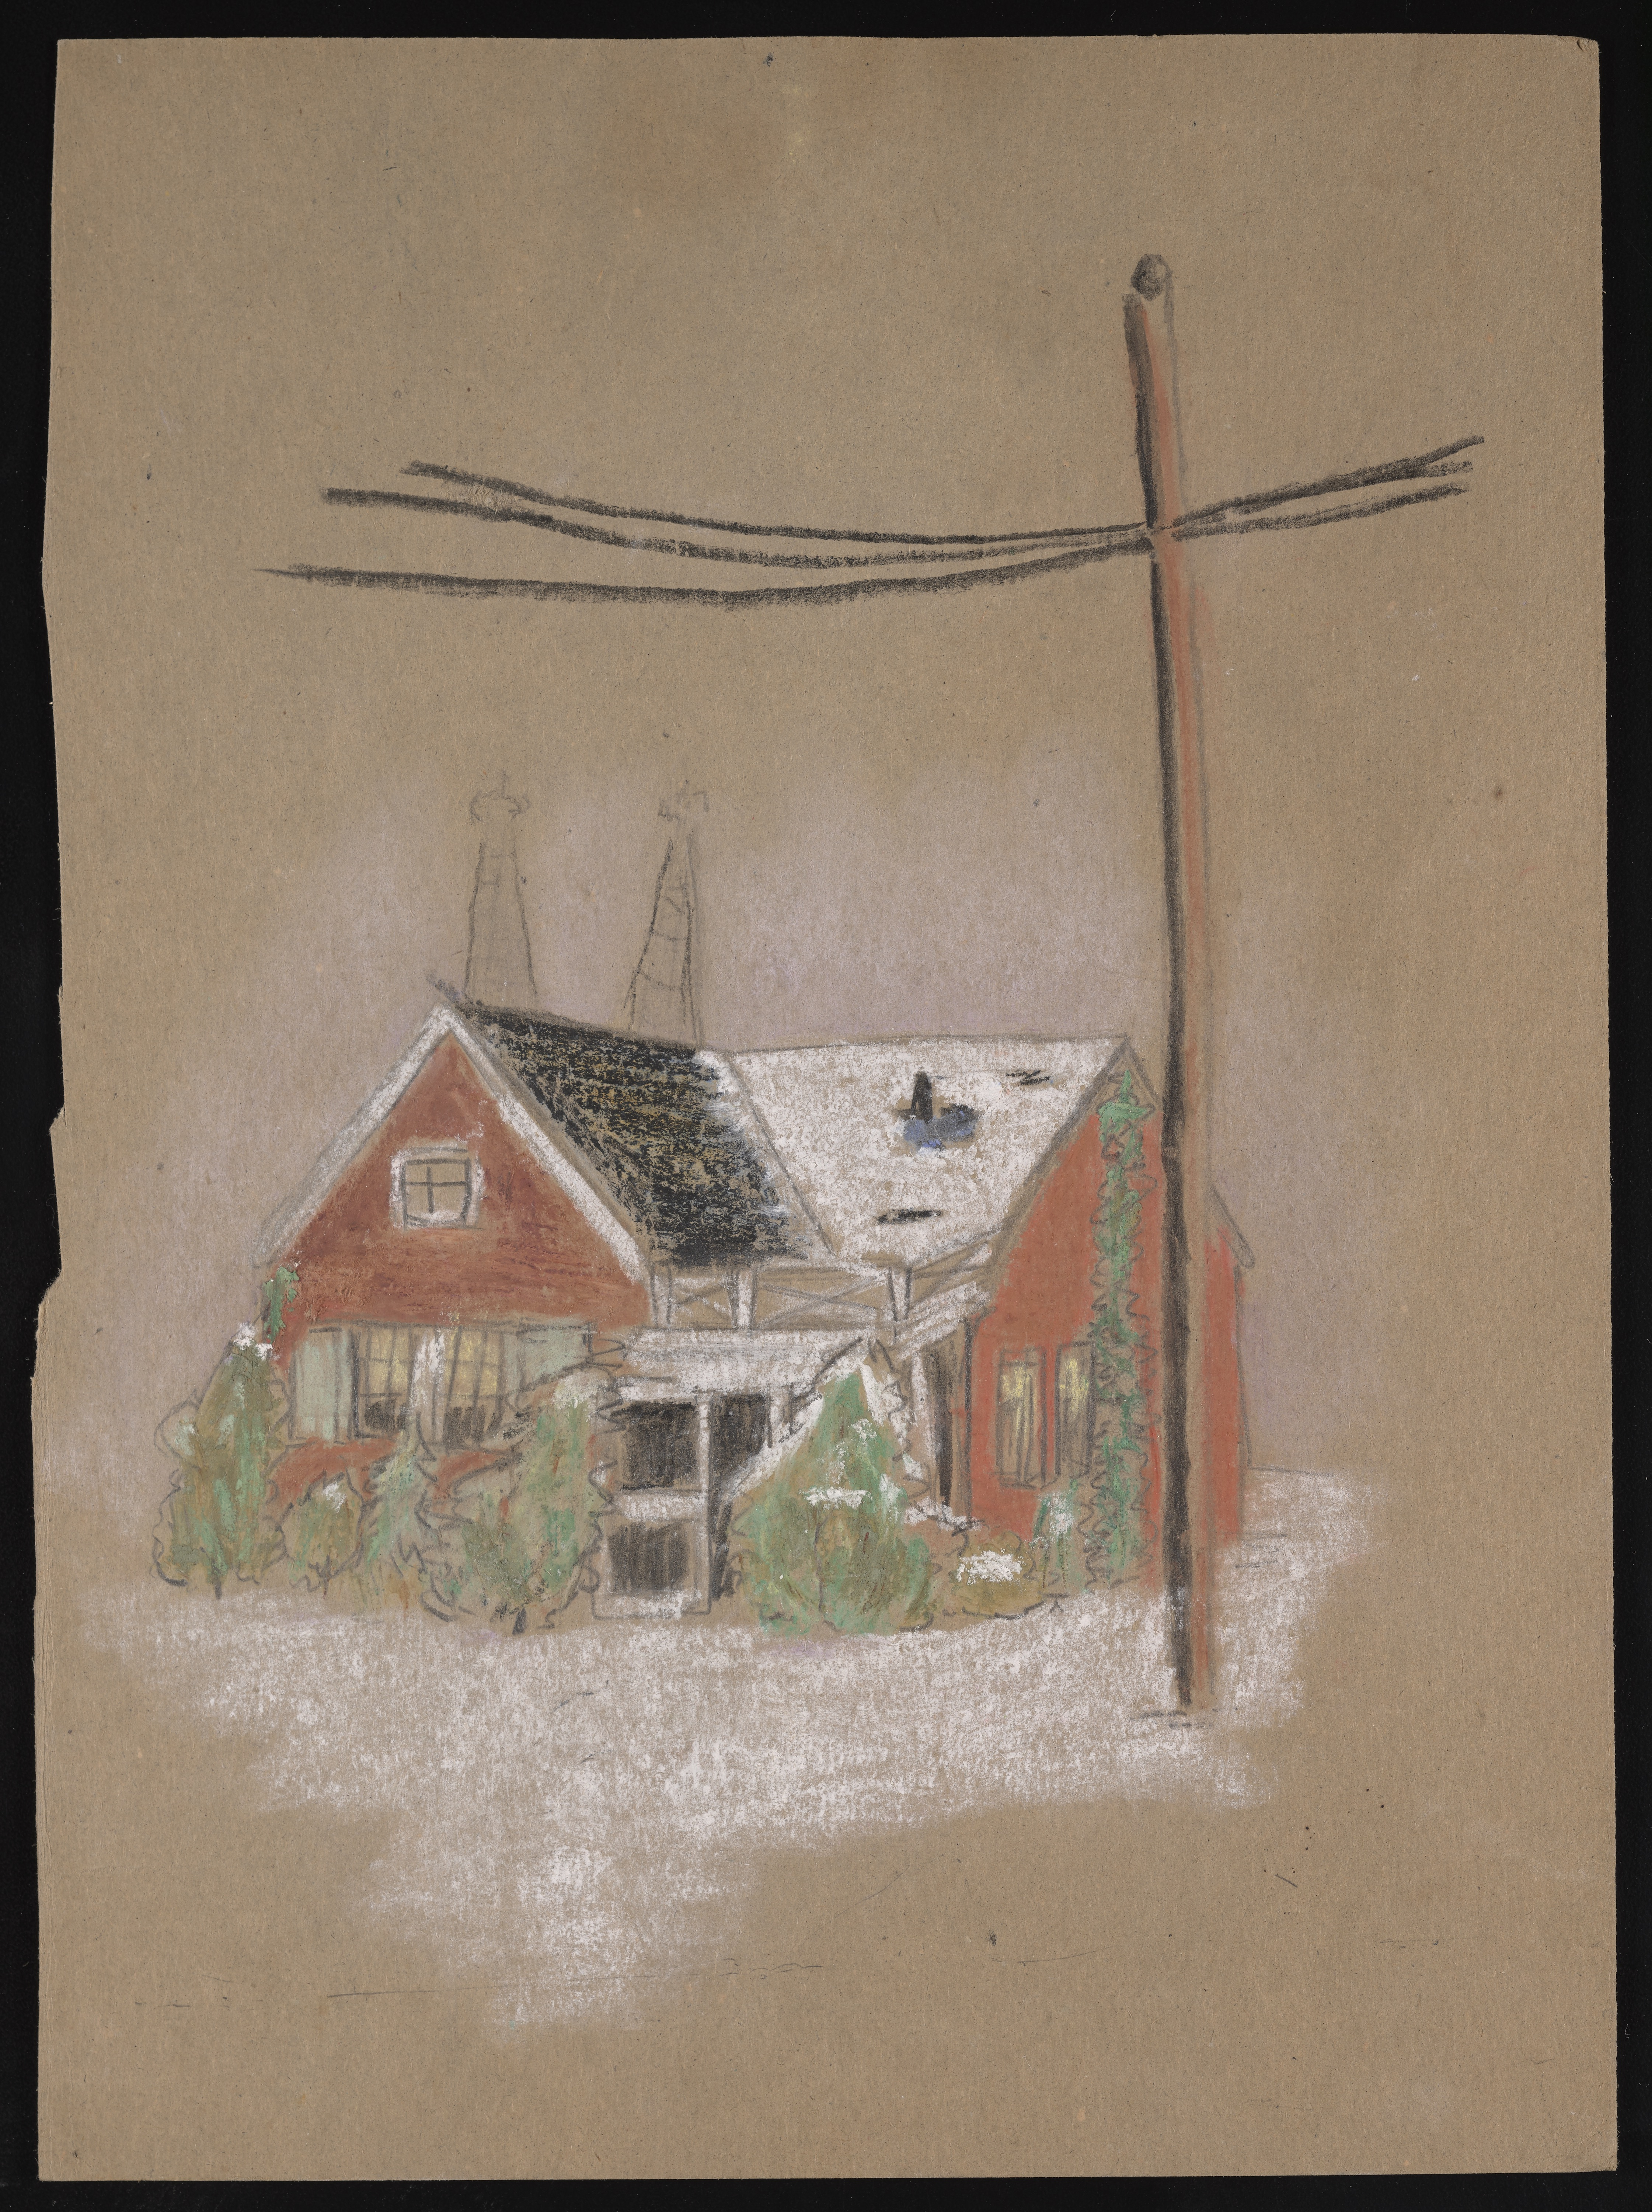 Color drawing on tan-colored construction paper, of a small red house with shrubs in front, lightly covered by snow. A telephone pole and cables are also present.